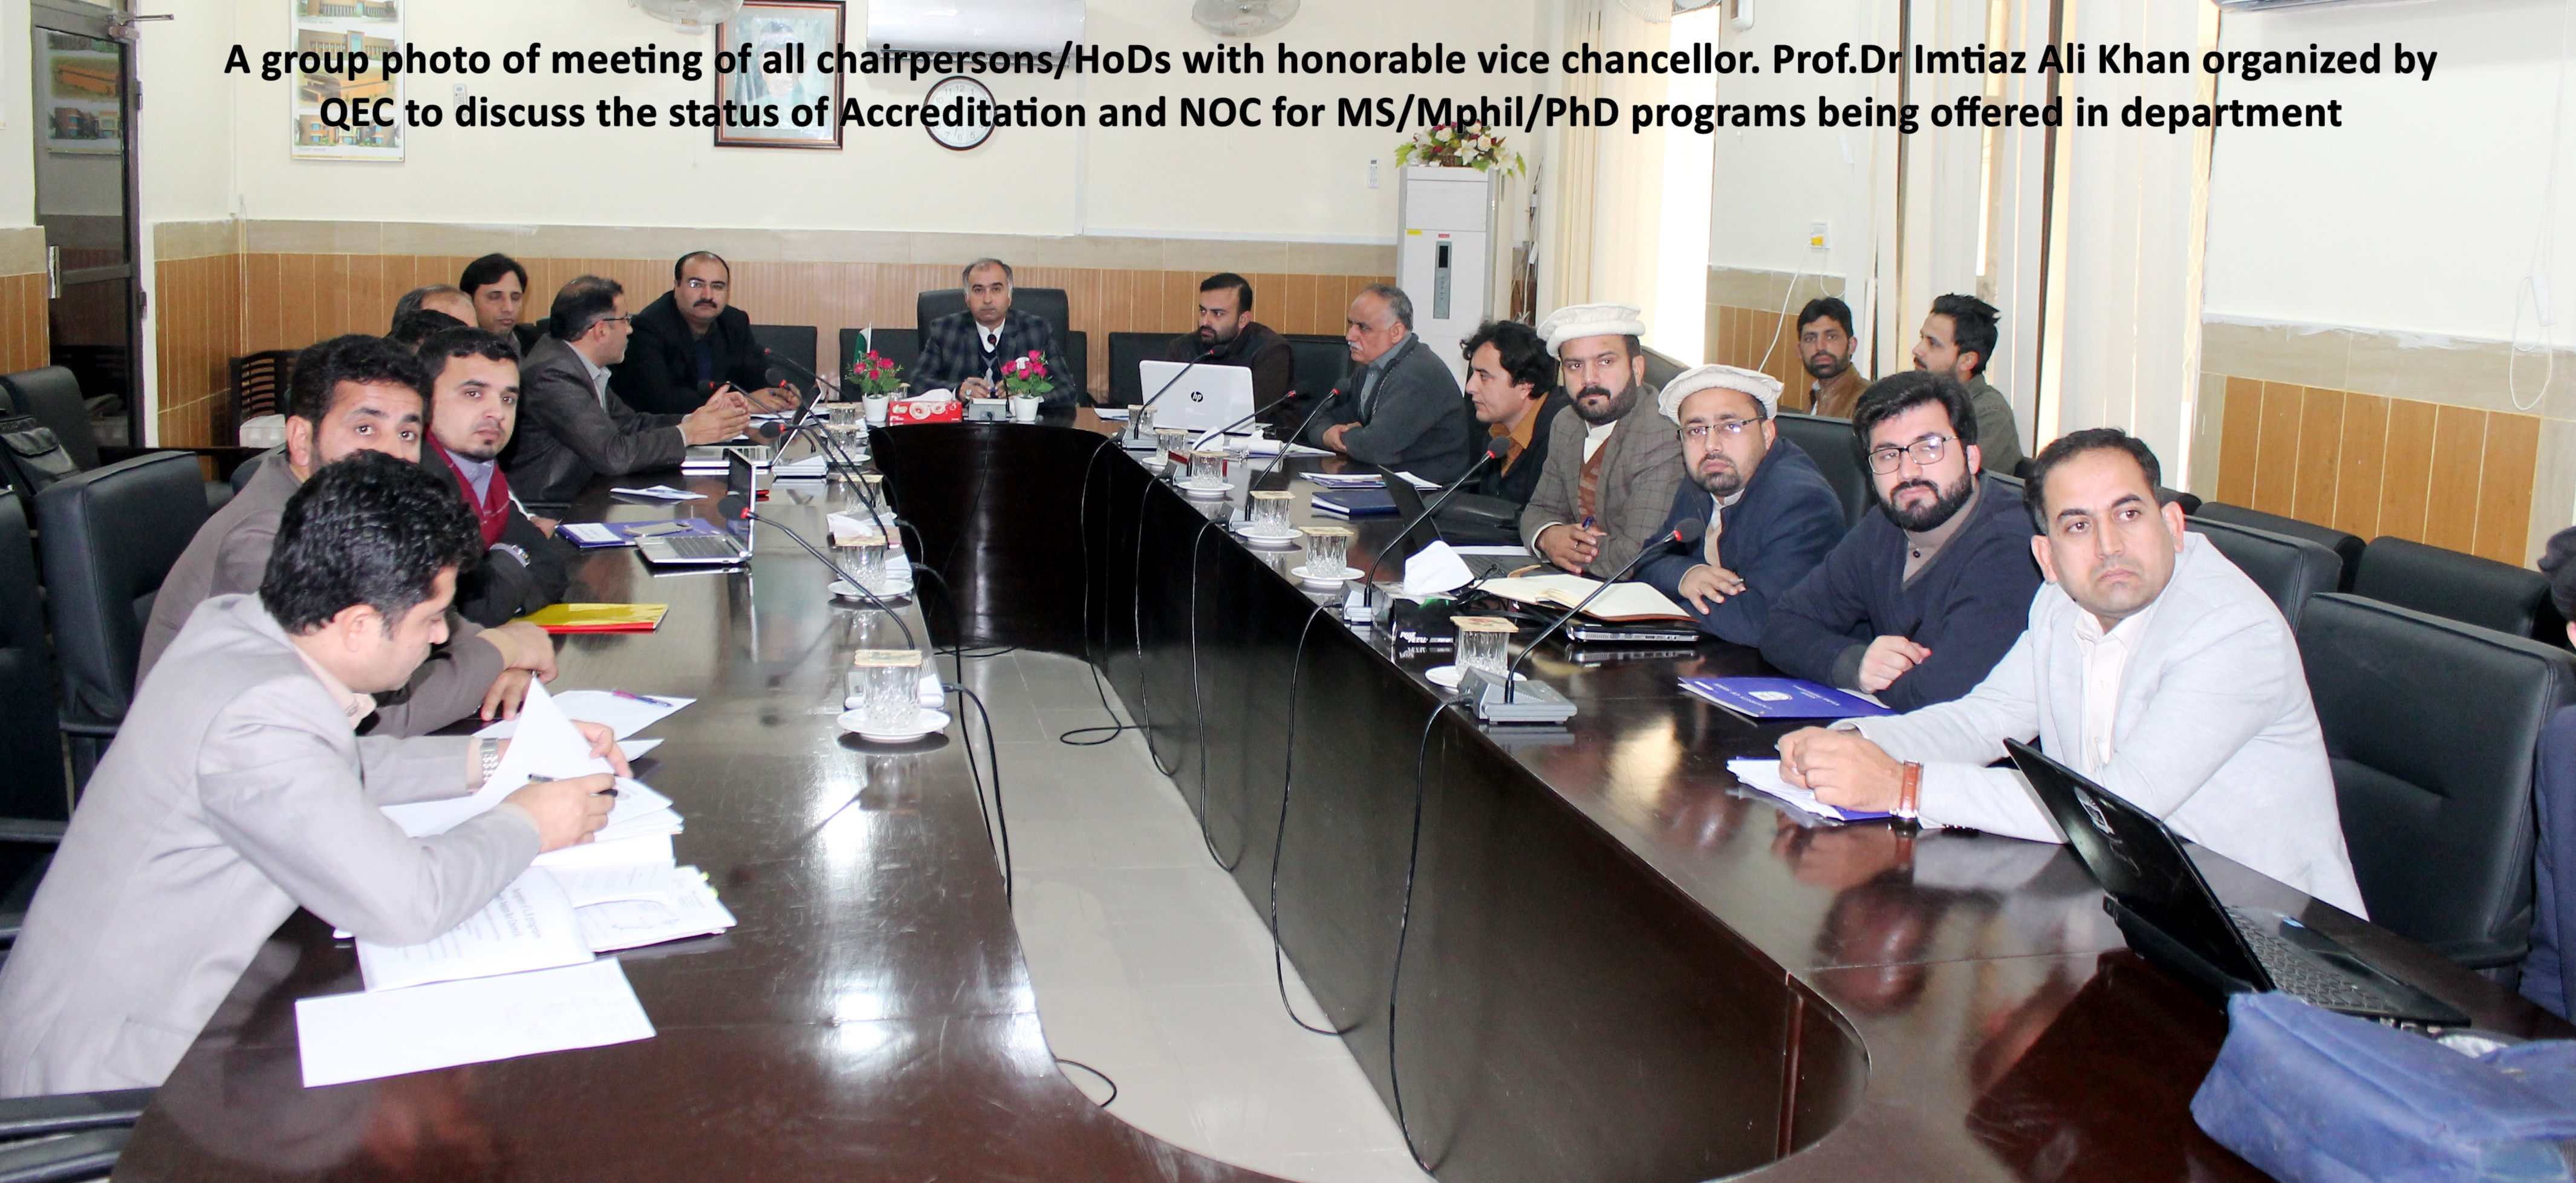 QEC to discuss the status of Accreditation and NOC for MS/Mphil/PhD programs being offered in department